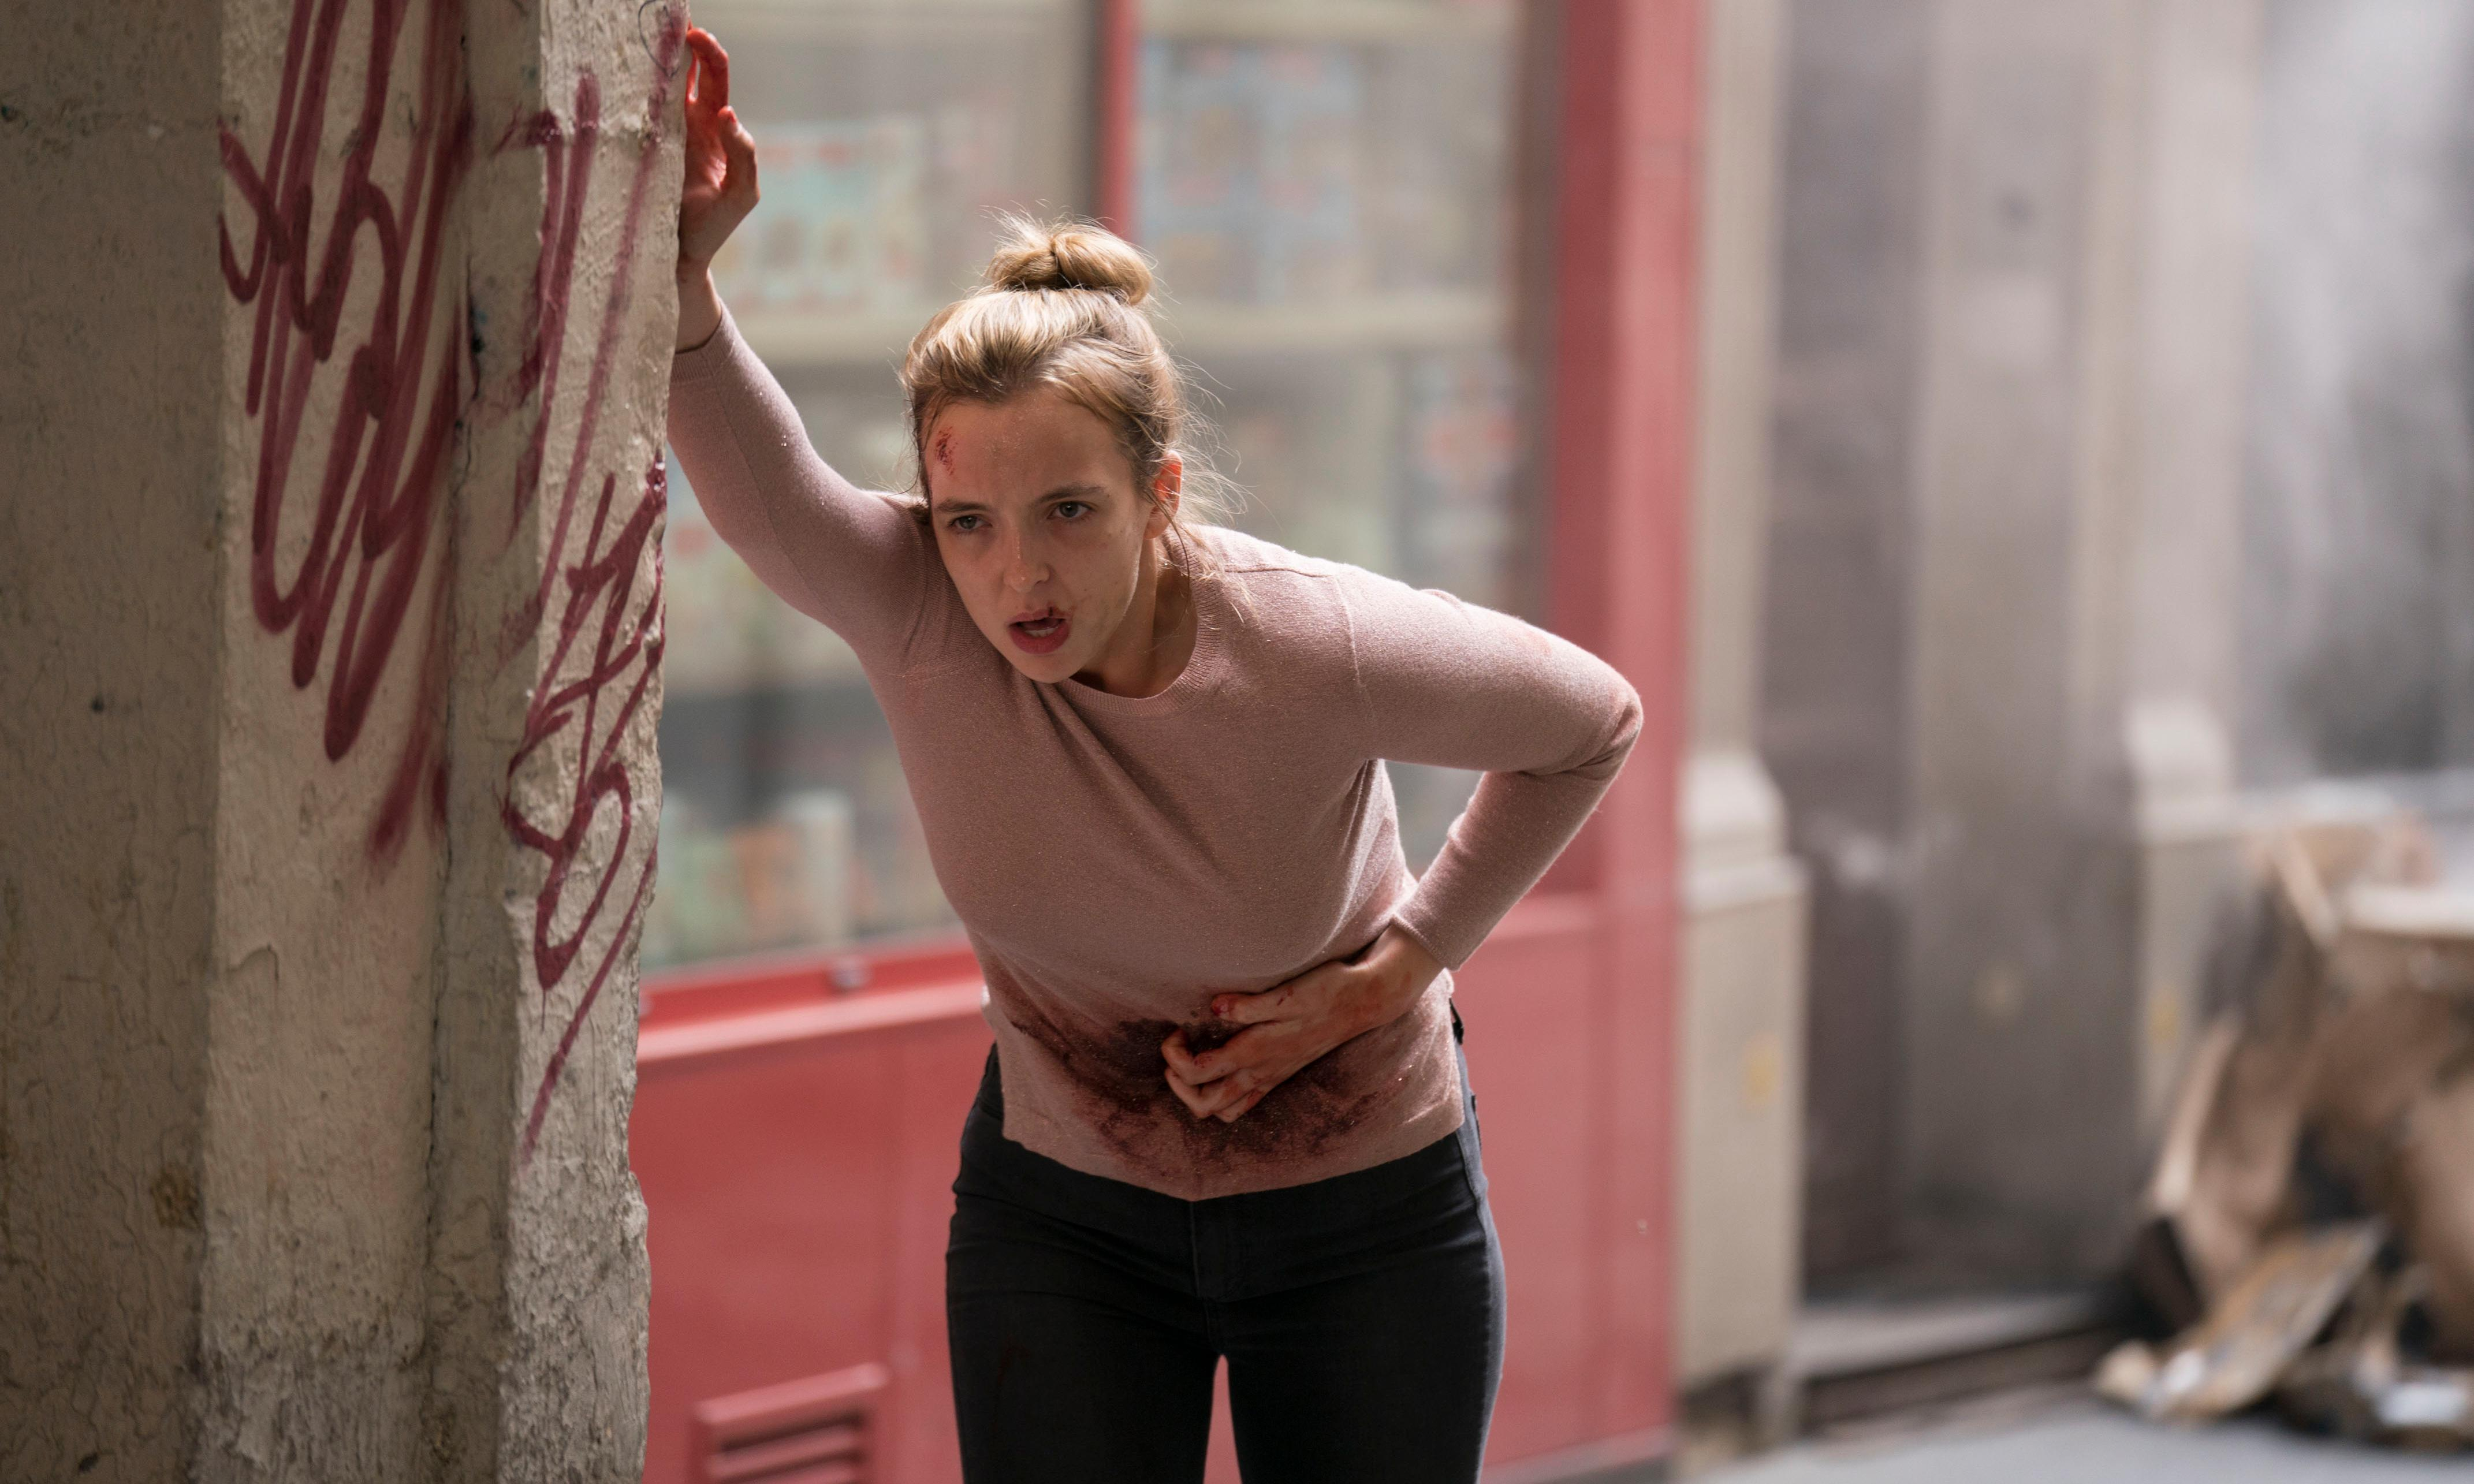 The week in TV: Killing Eve, Black Mirror, 63 Up, Tales of the City, Chernobyl – review